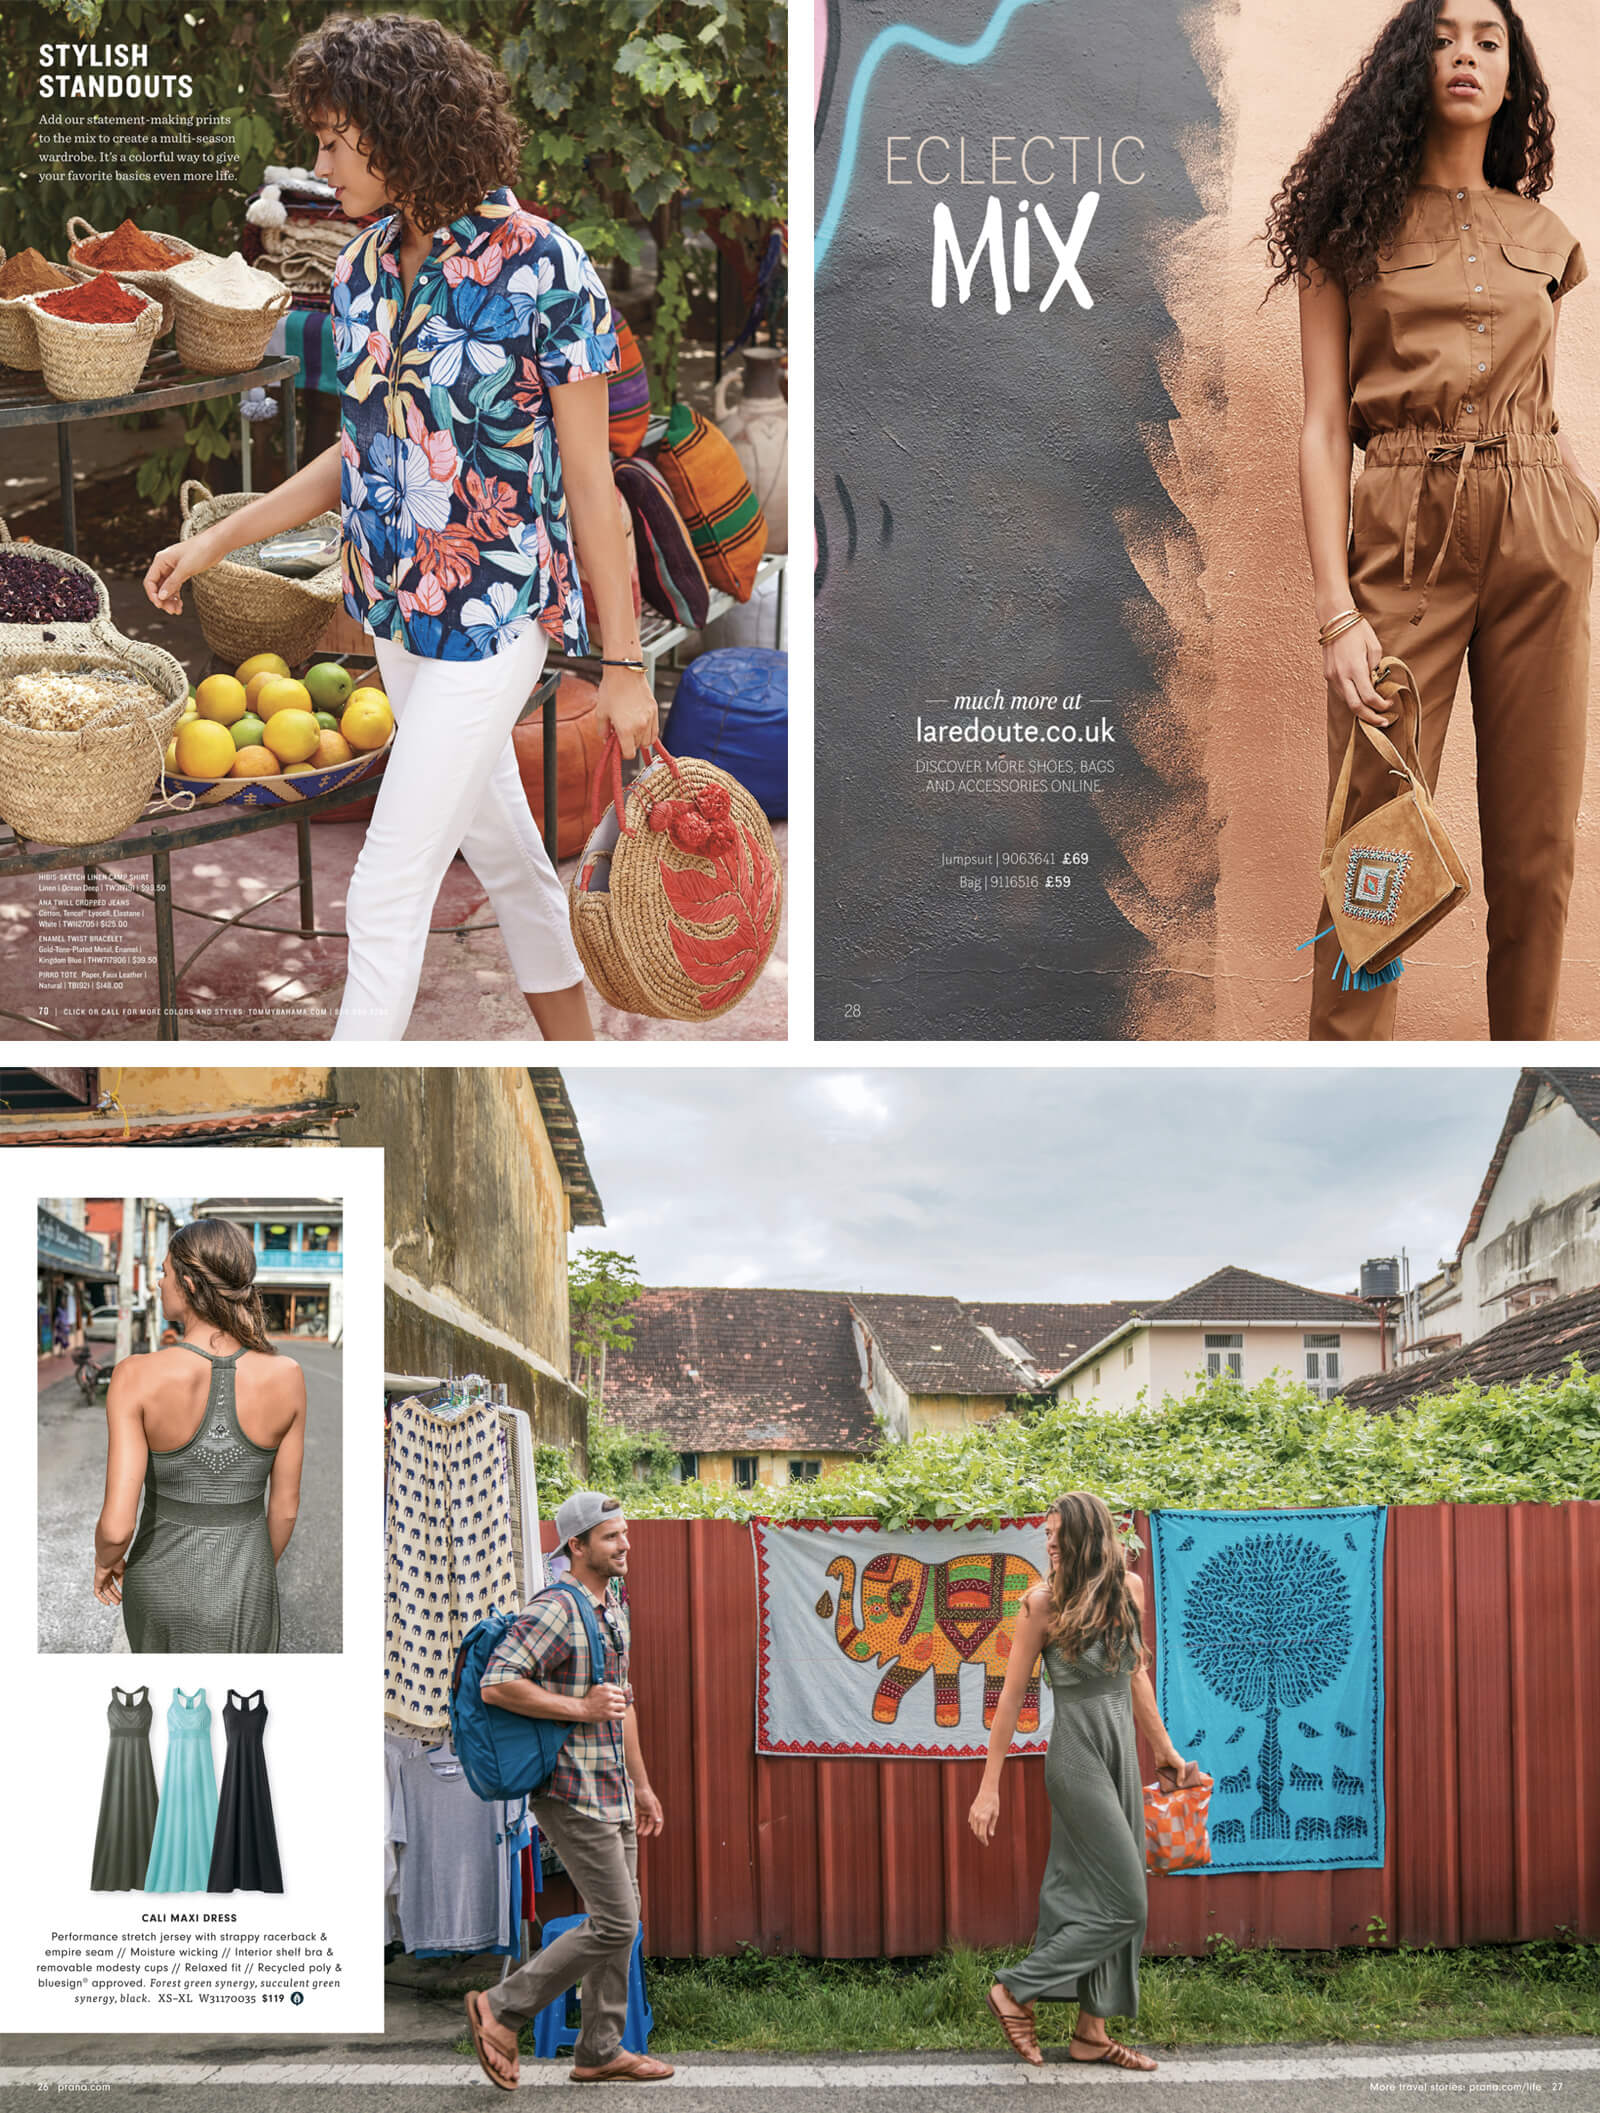 Multilocalism example in product catalog layout design (woman walking through street market)